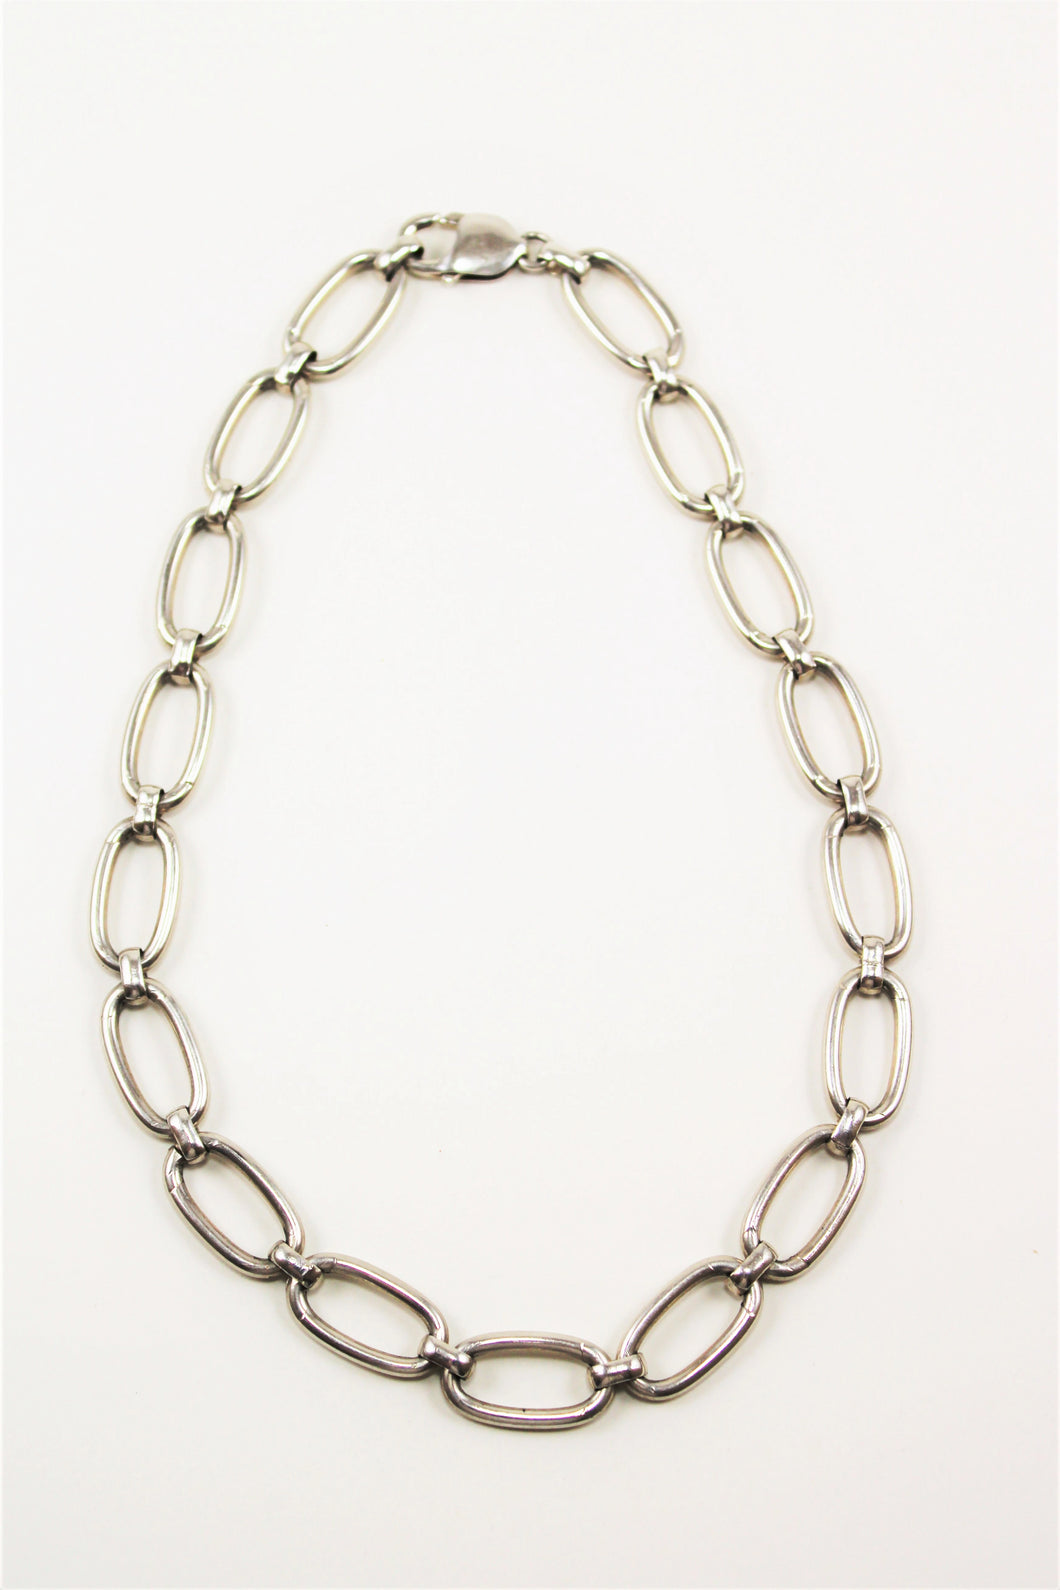 Heavy Sterling Silver Link Chain